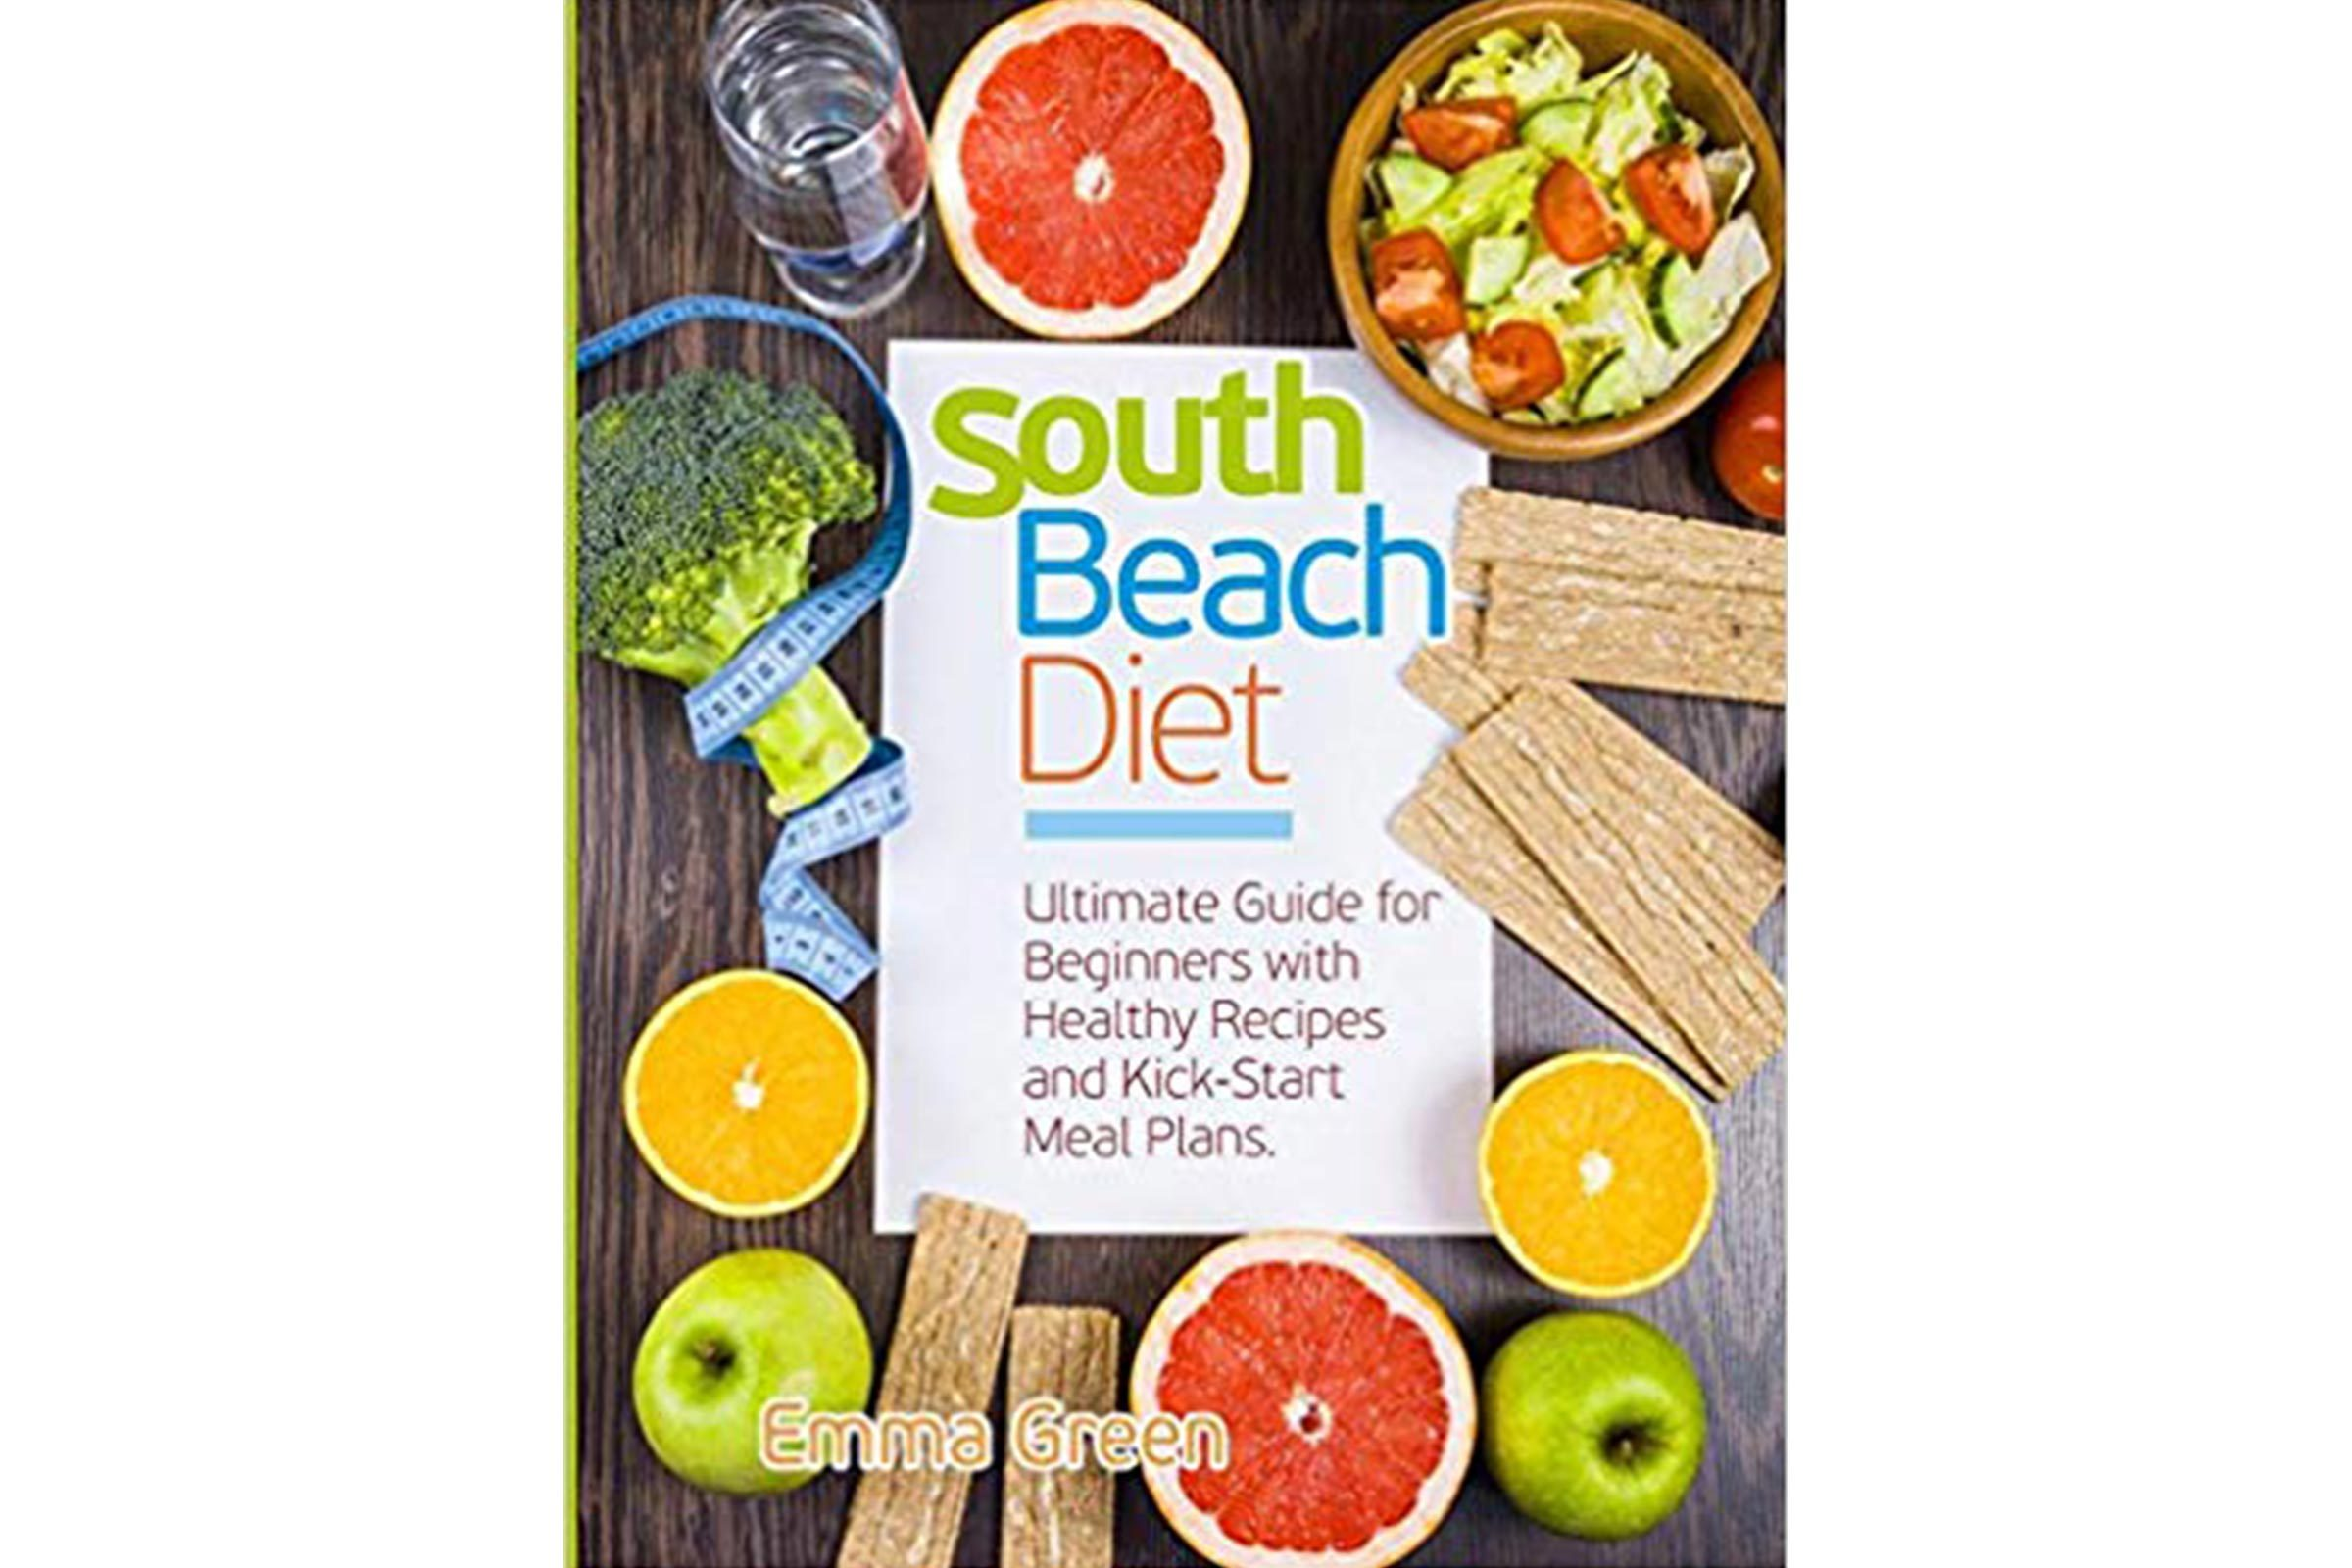 the south-beach diet